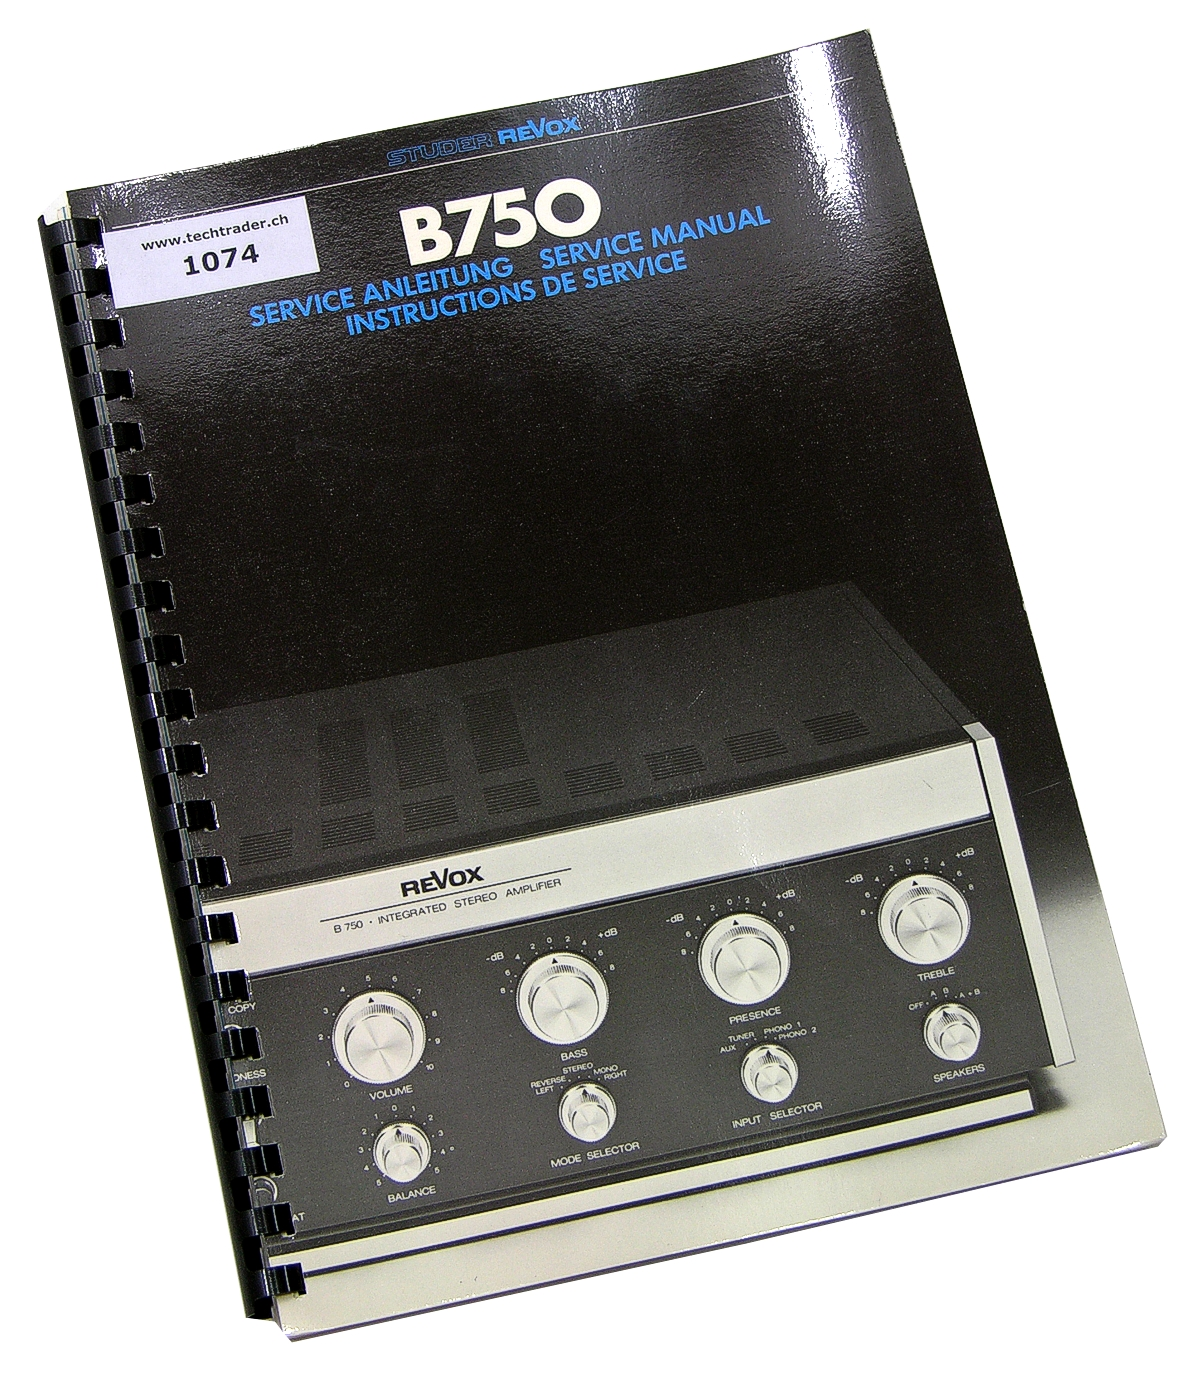 revox b750 amplifier original service instructions ebay. Black Bedroom Furniture Sets. Home Design Ideas